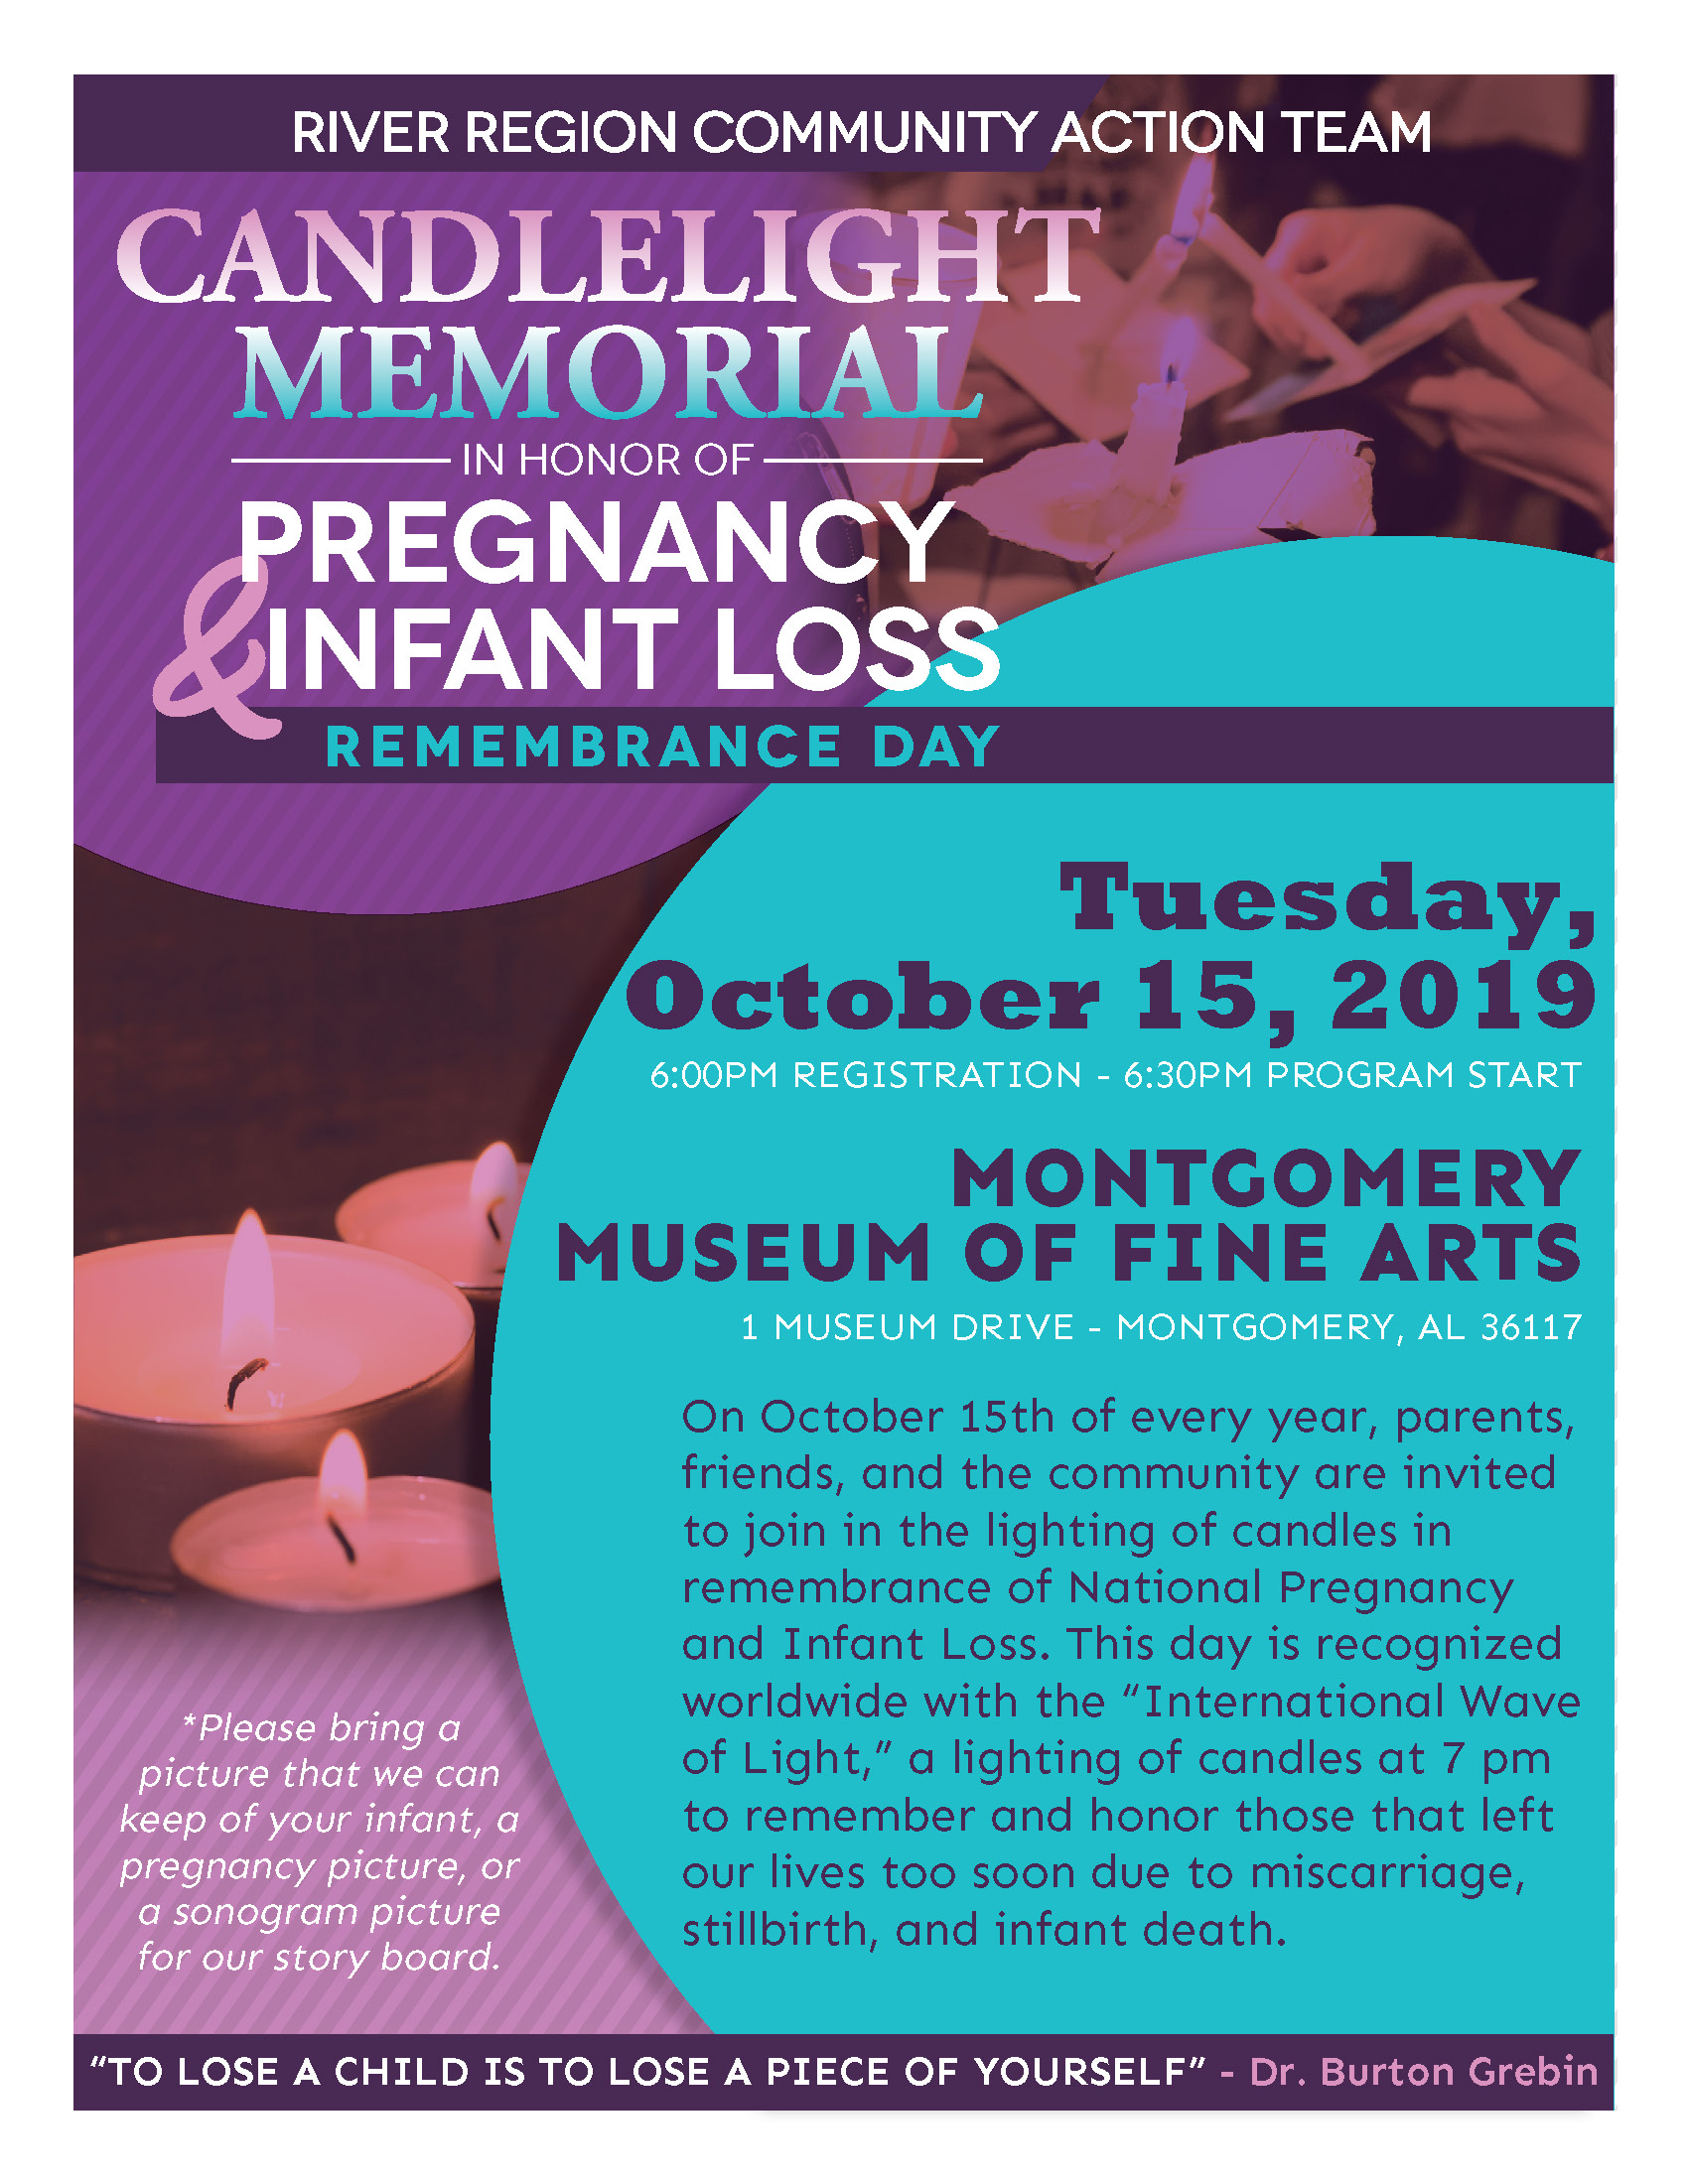 Candlelight Memorial Service Flyer - 2019.jpg